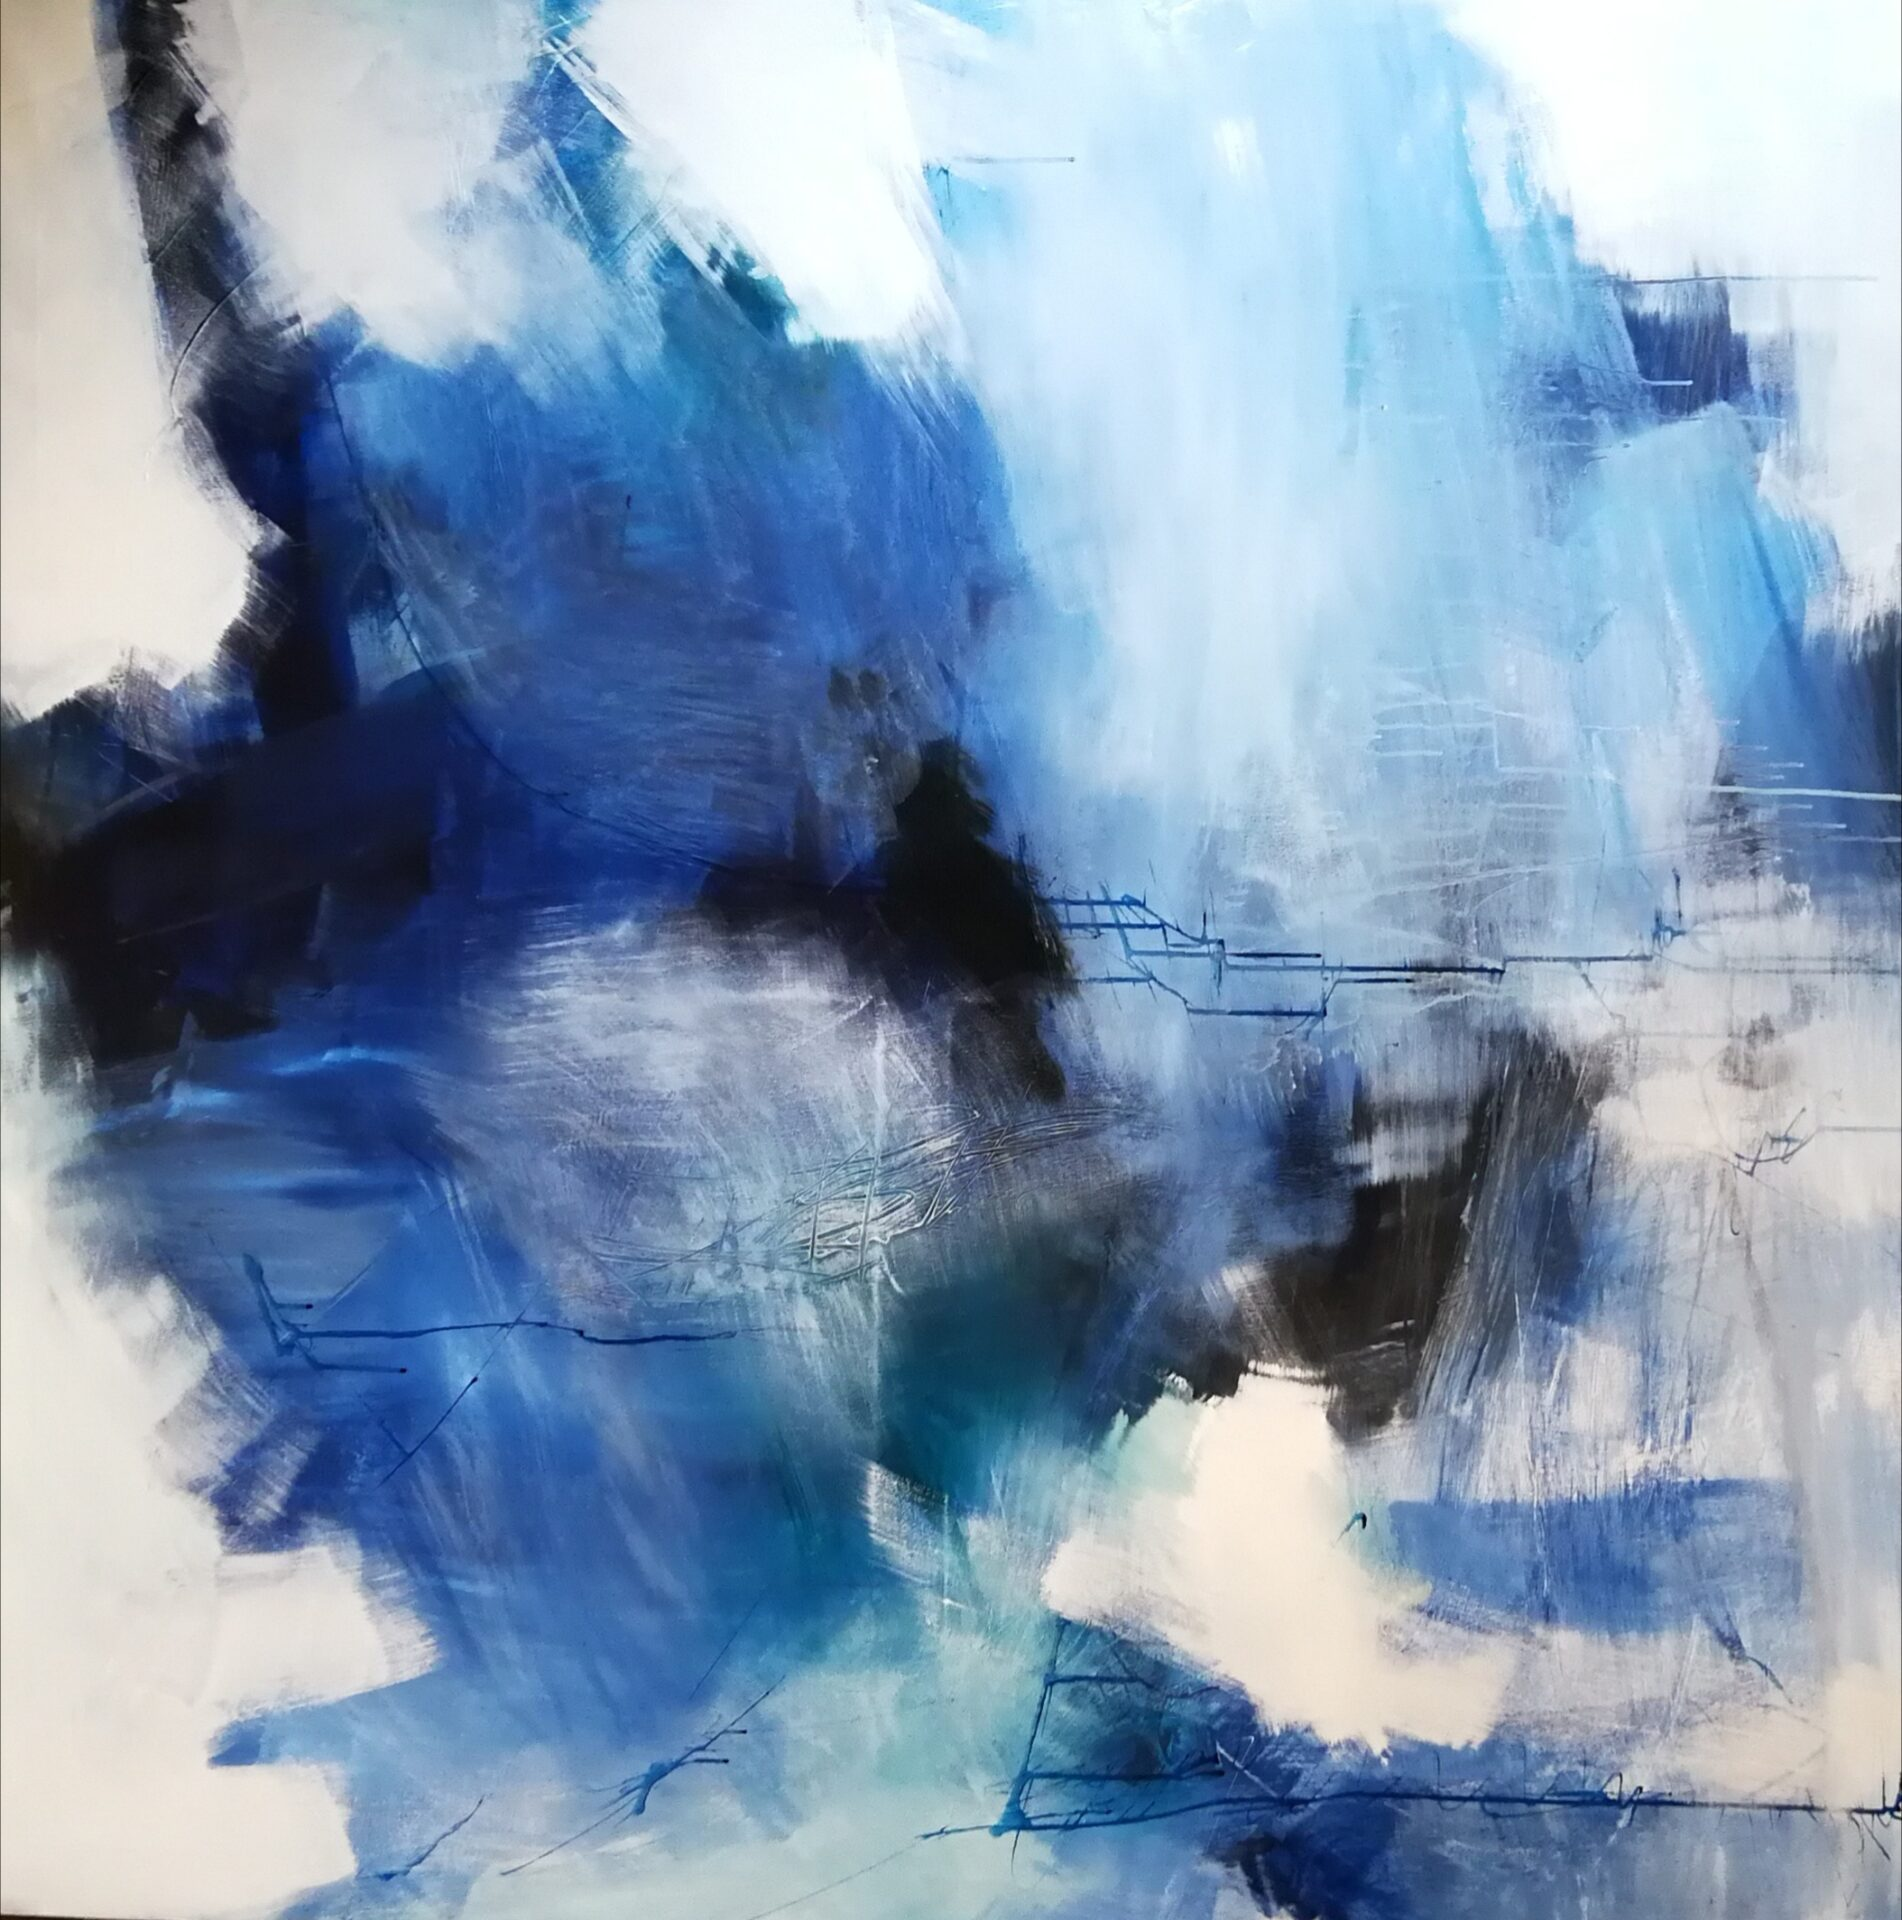 Anitta Jonas, abstract on canvas 150x150